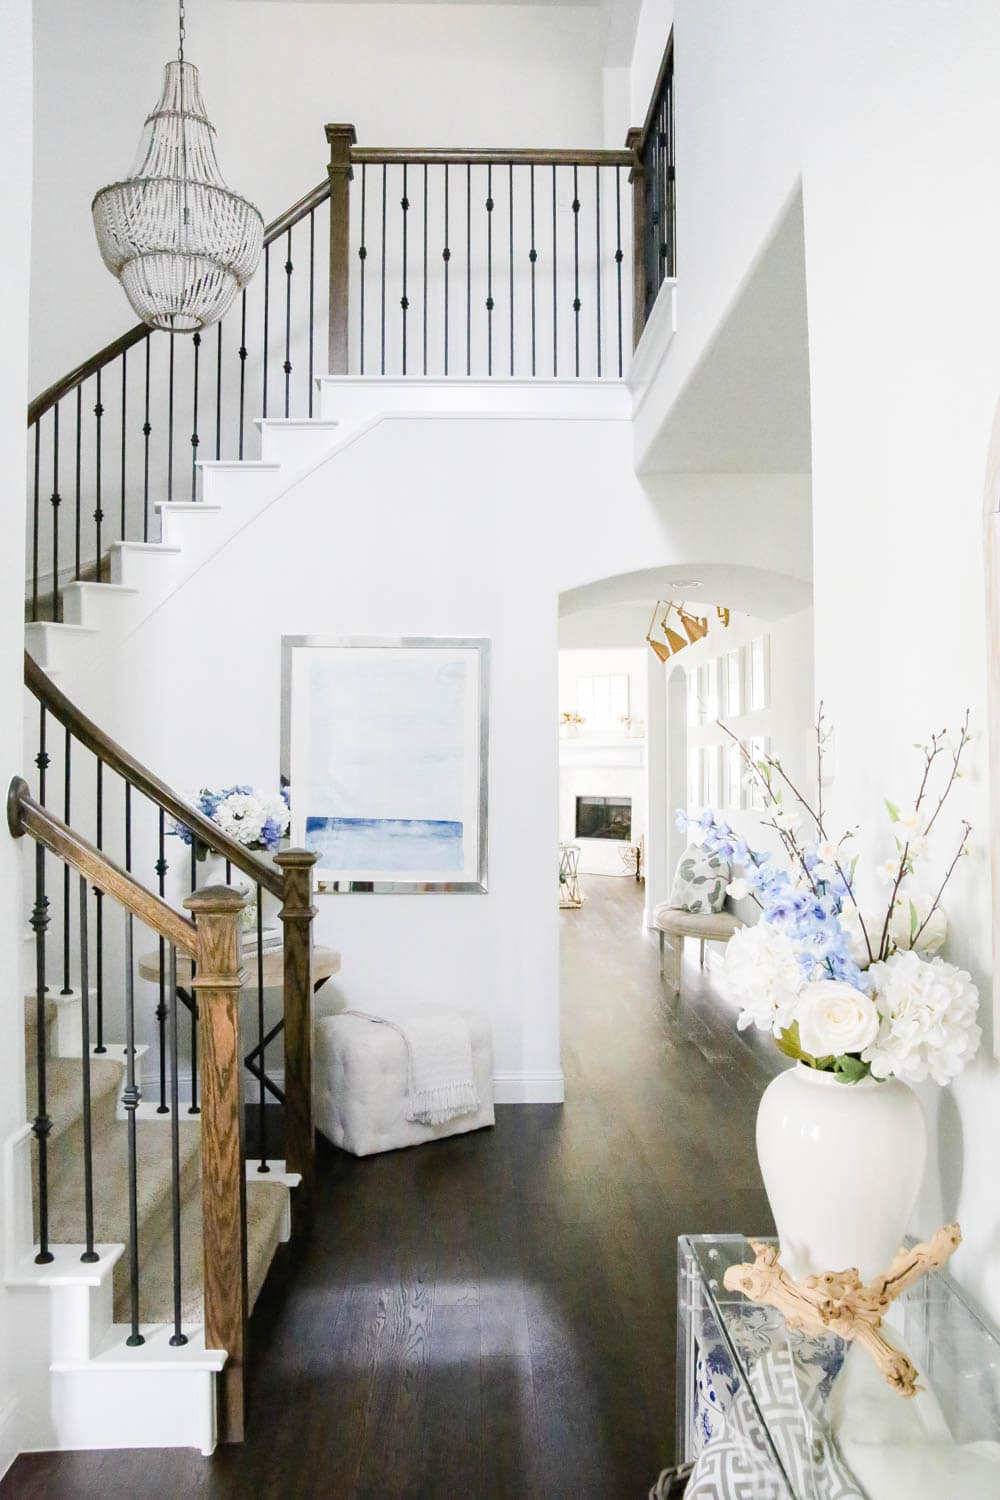 Entryway view with blue and white decor, ocean art, beaded chandelier, flowers in white vase, white painted interior. #ABlissfulNest #entrydecor #entryway #designtips